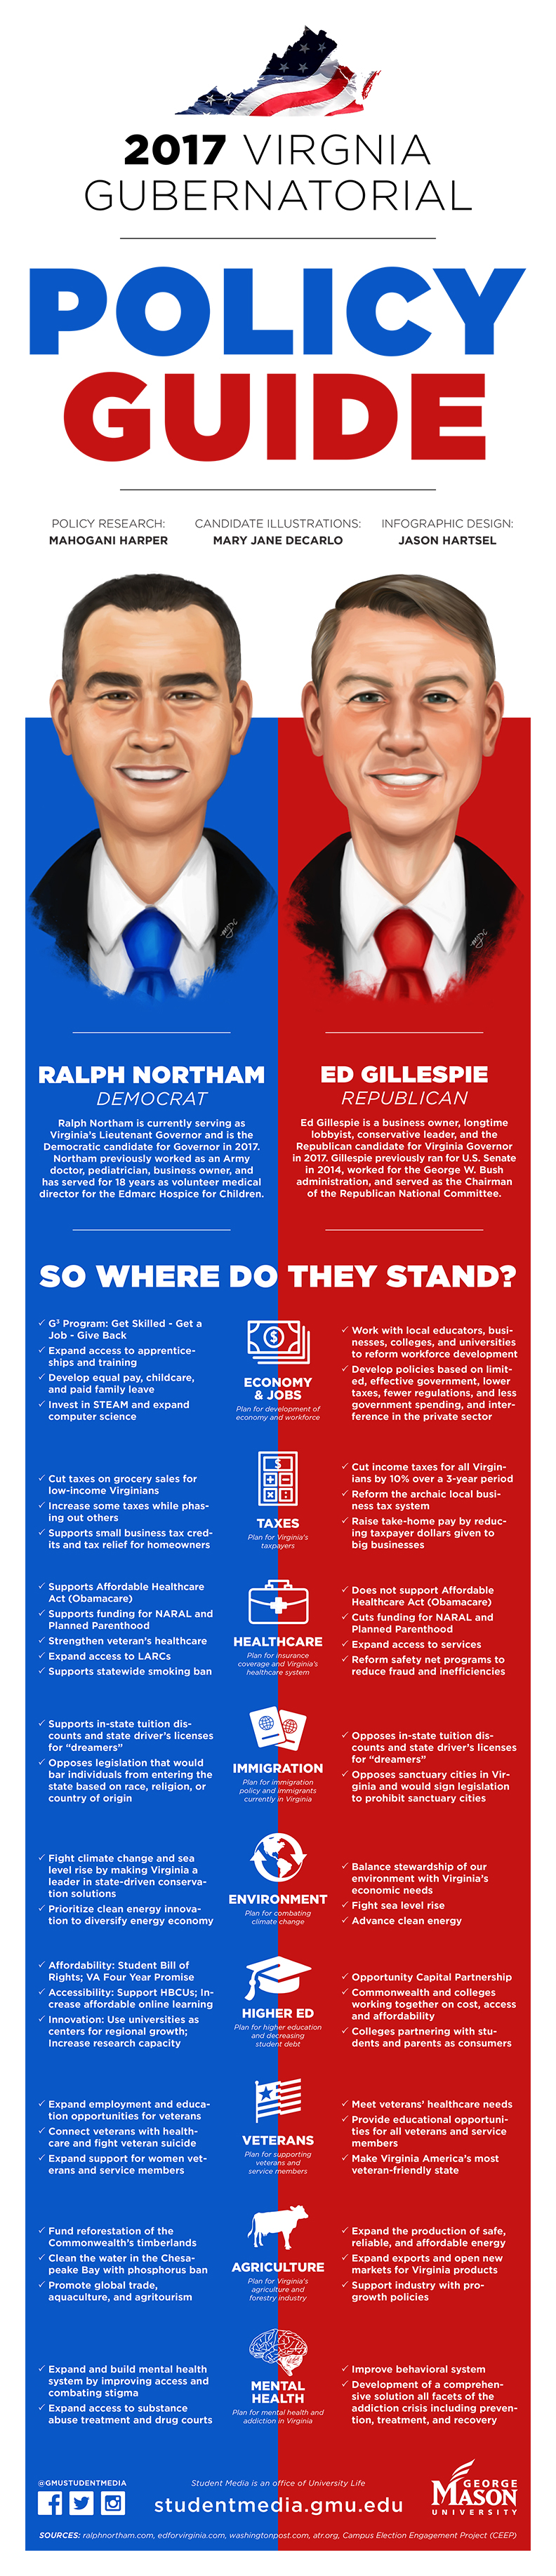 VA-Gubernatorial-Election-Infographic-2017